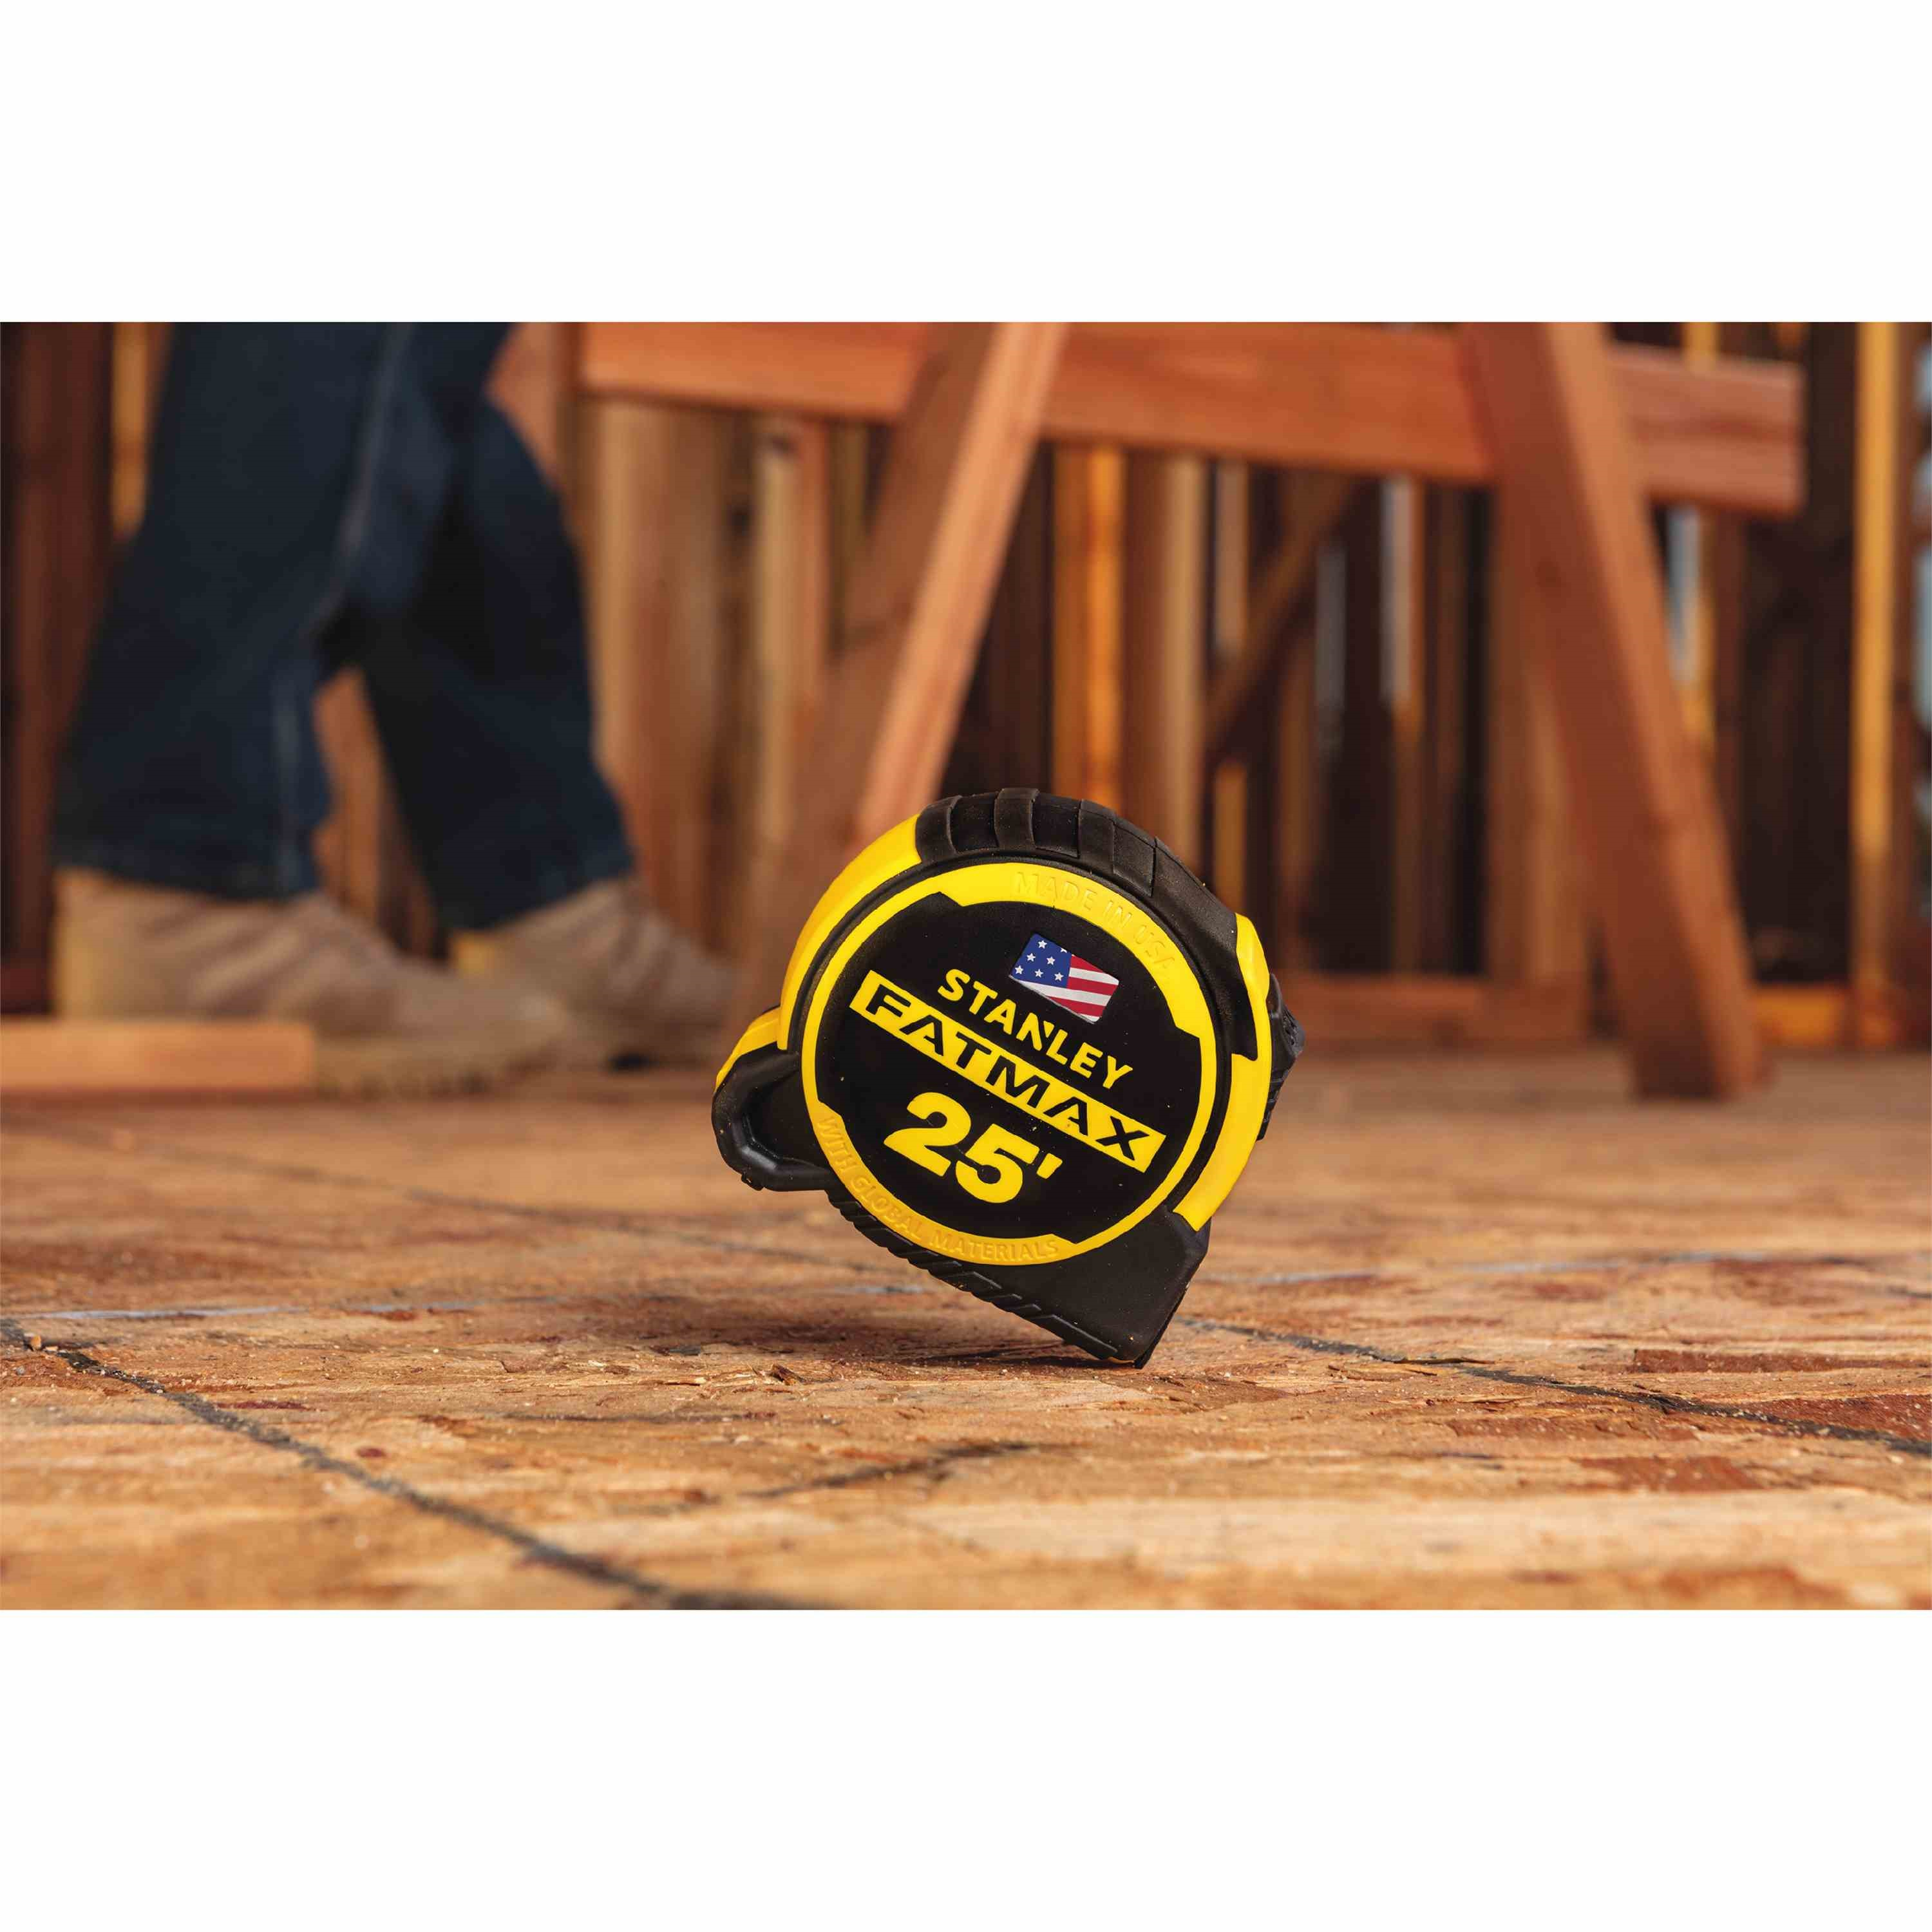 Stanley Tools - 2018 FATMAX 25 ft Tape Measure - FMHT36325S